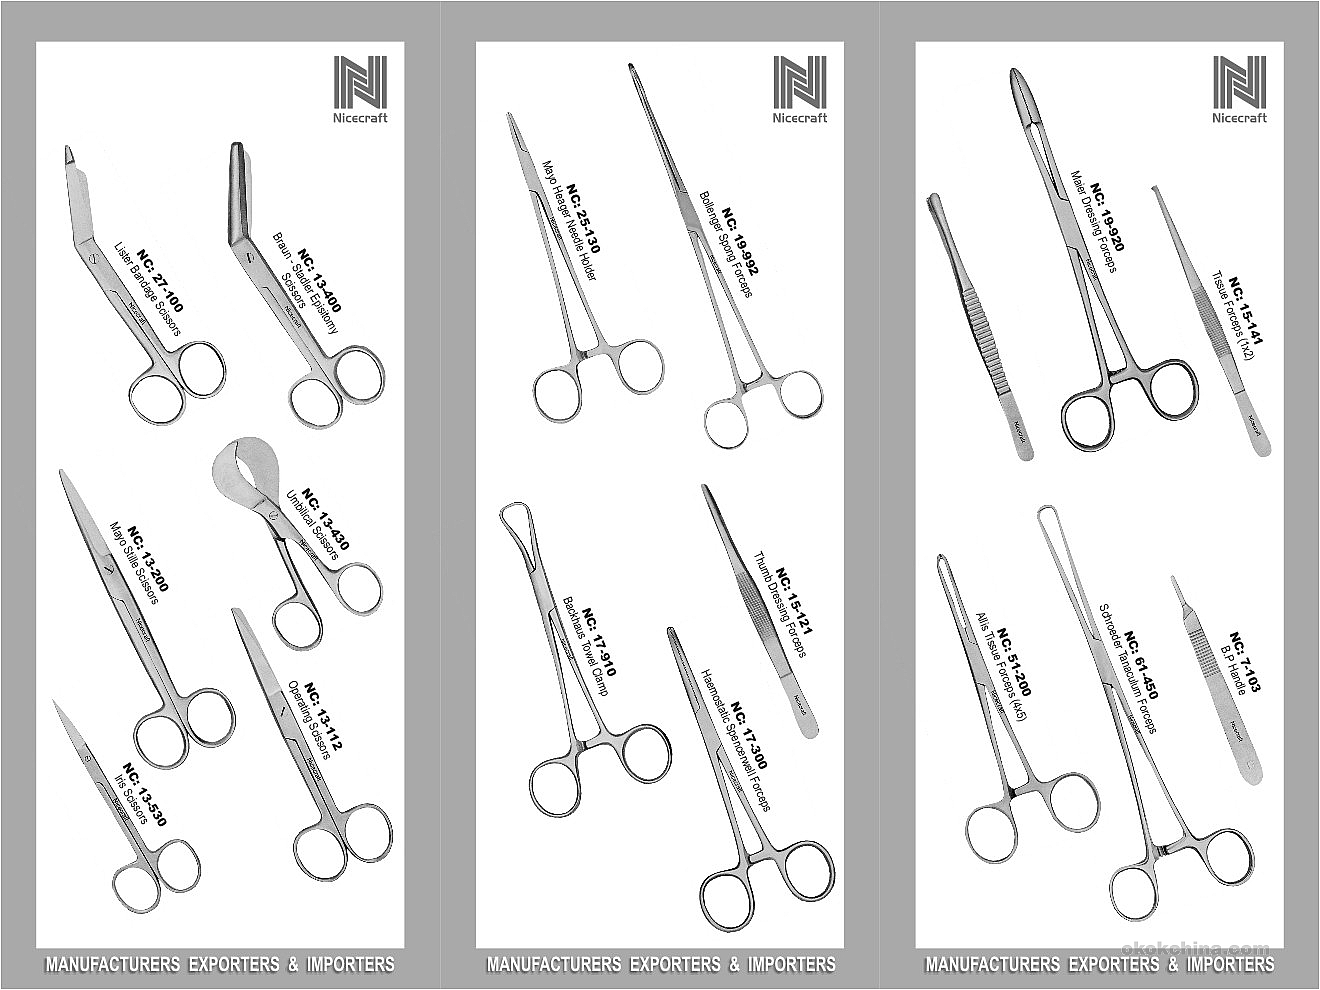 MEDICAL PHOTOS PHOTOGRAPHY CLINICAL ANATOMICAL SURGICAL INSTRUMENTS AND SUPPLIERS WORLD WIDE LIST OF